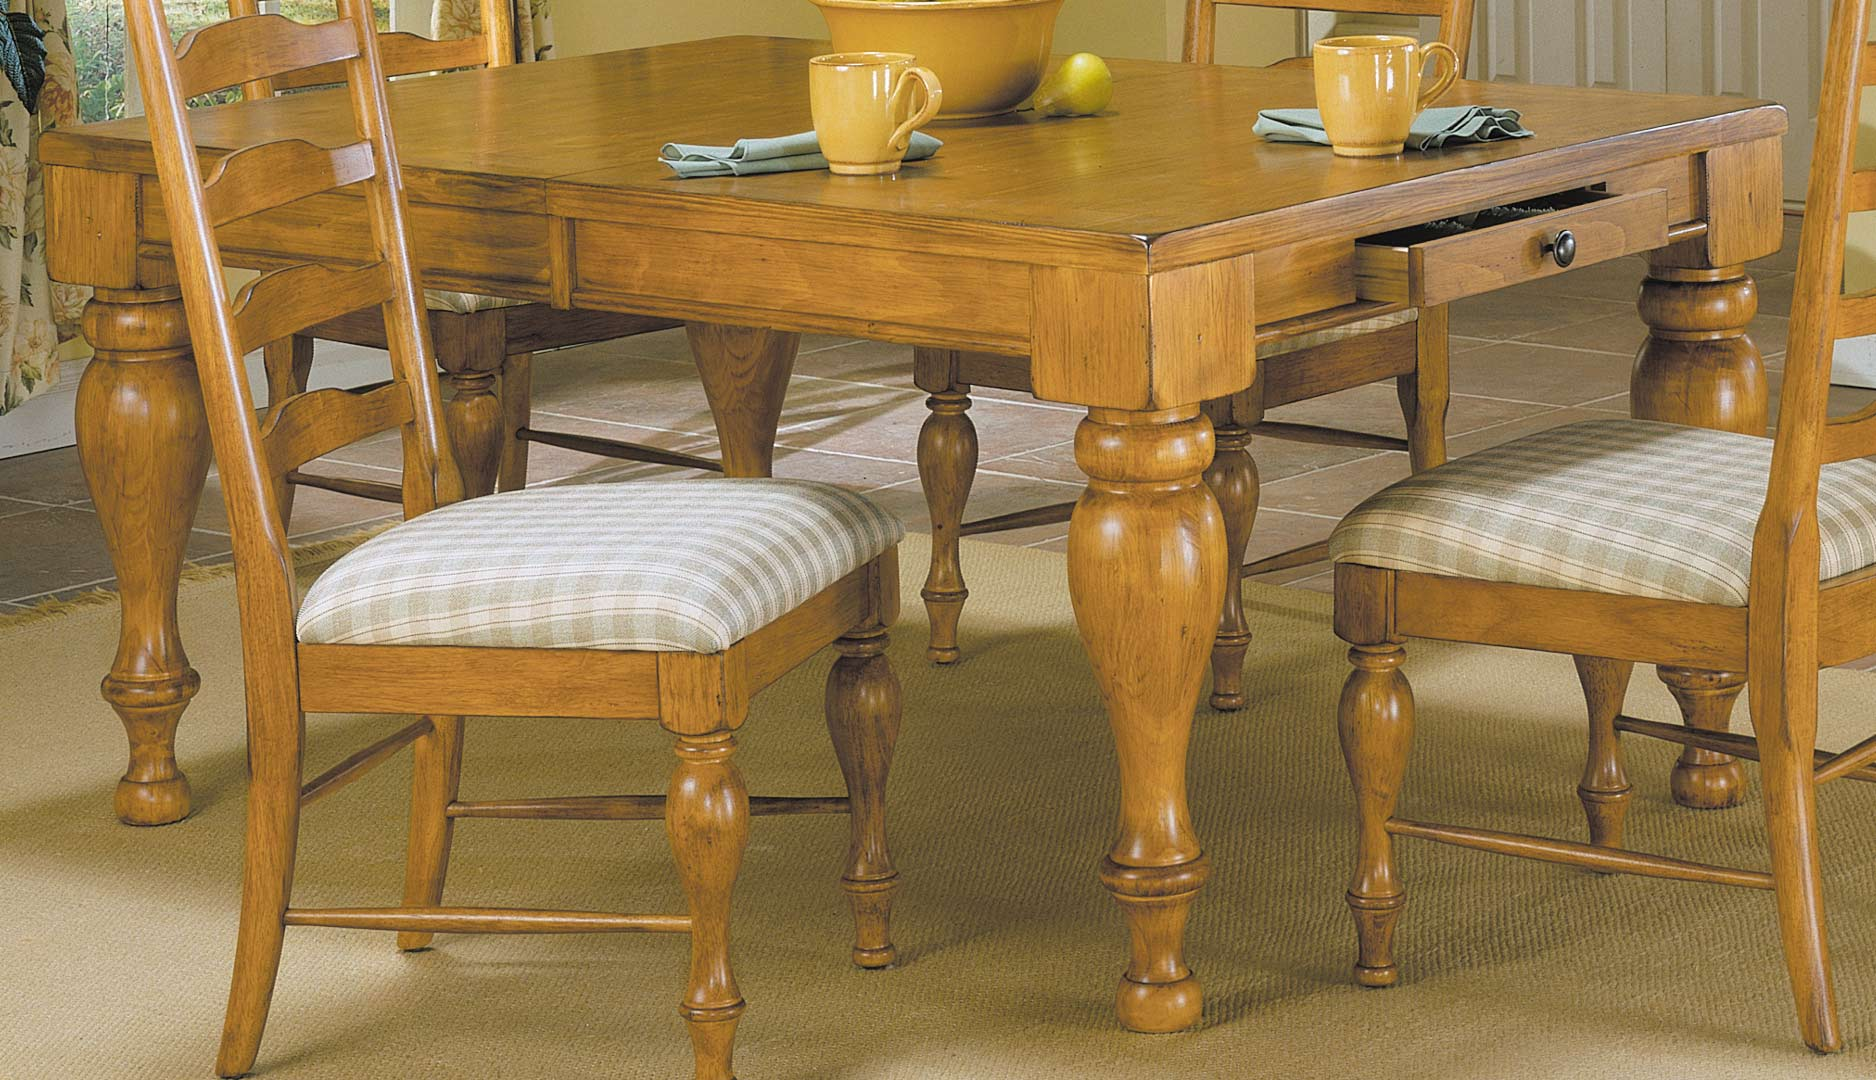 Pine Dining Room Table And Chairs Rustic Pine Dining Room Tables